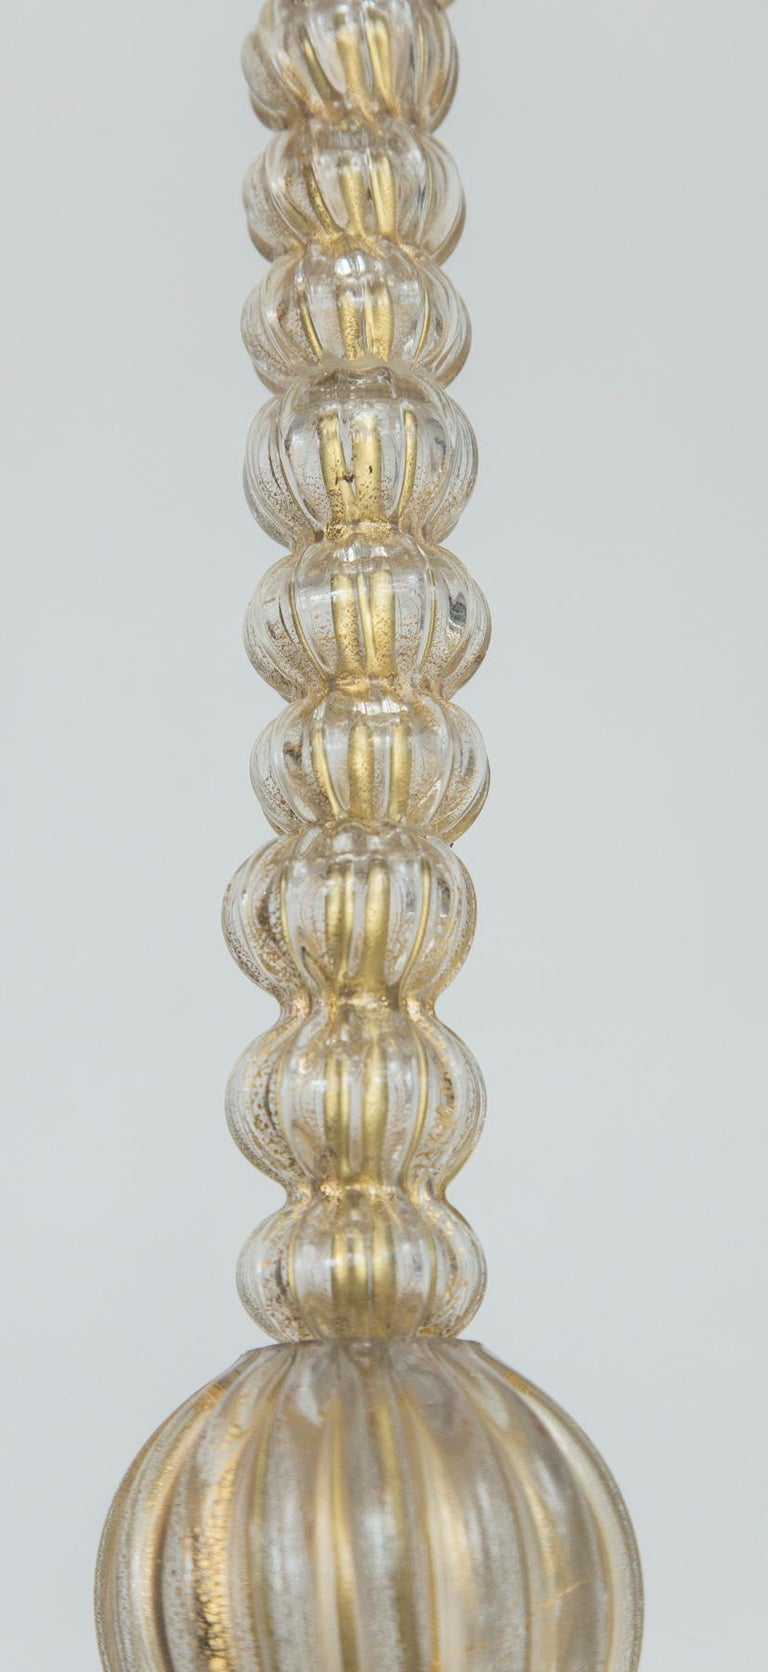 Mid-20th Century Vintage Murano Lantern by Ercole Barovier For Sale